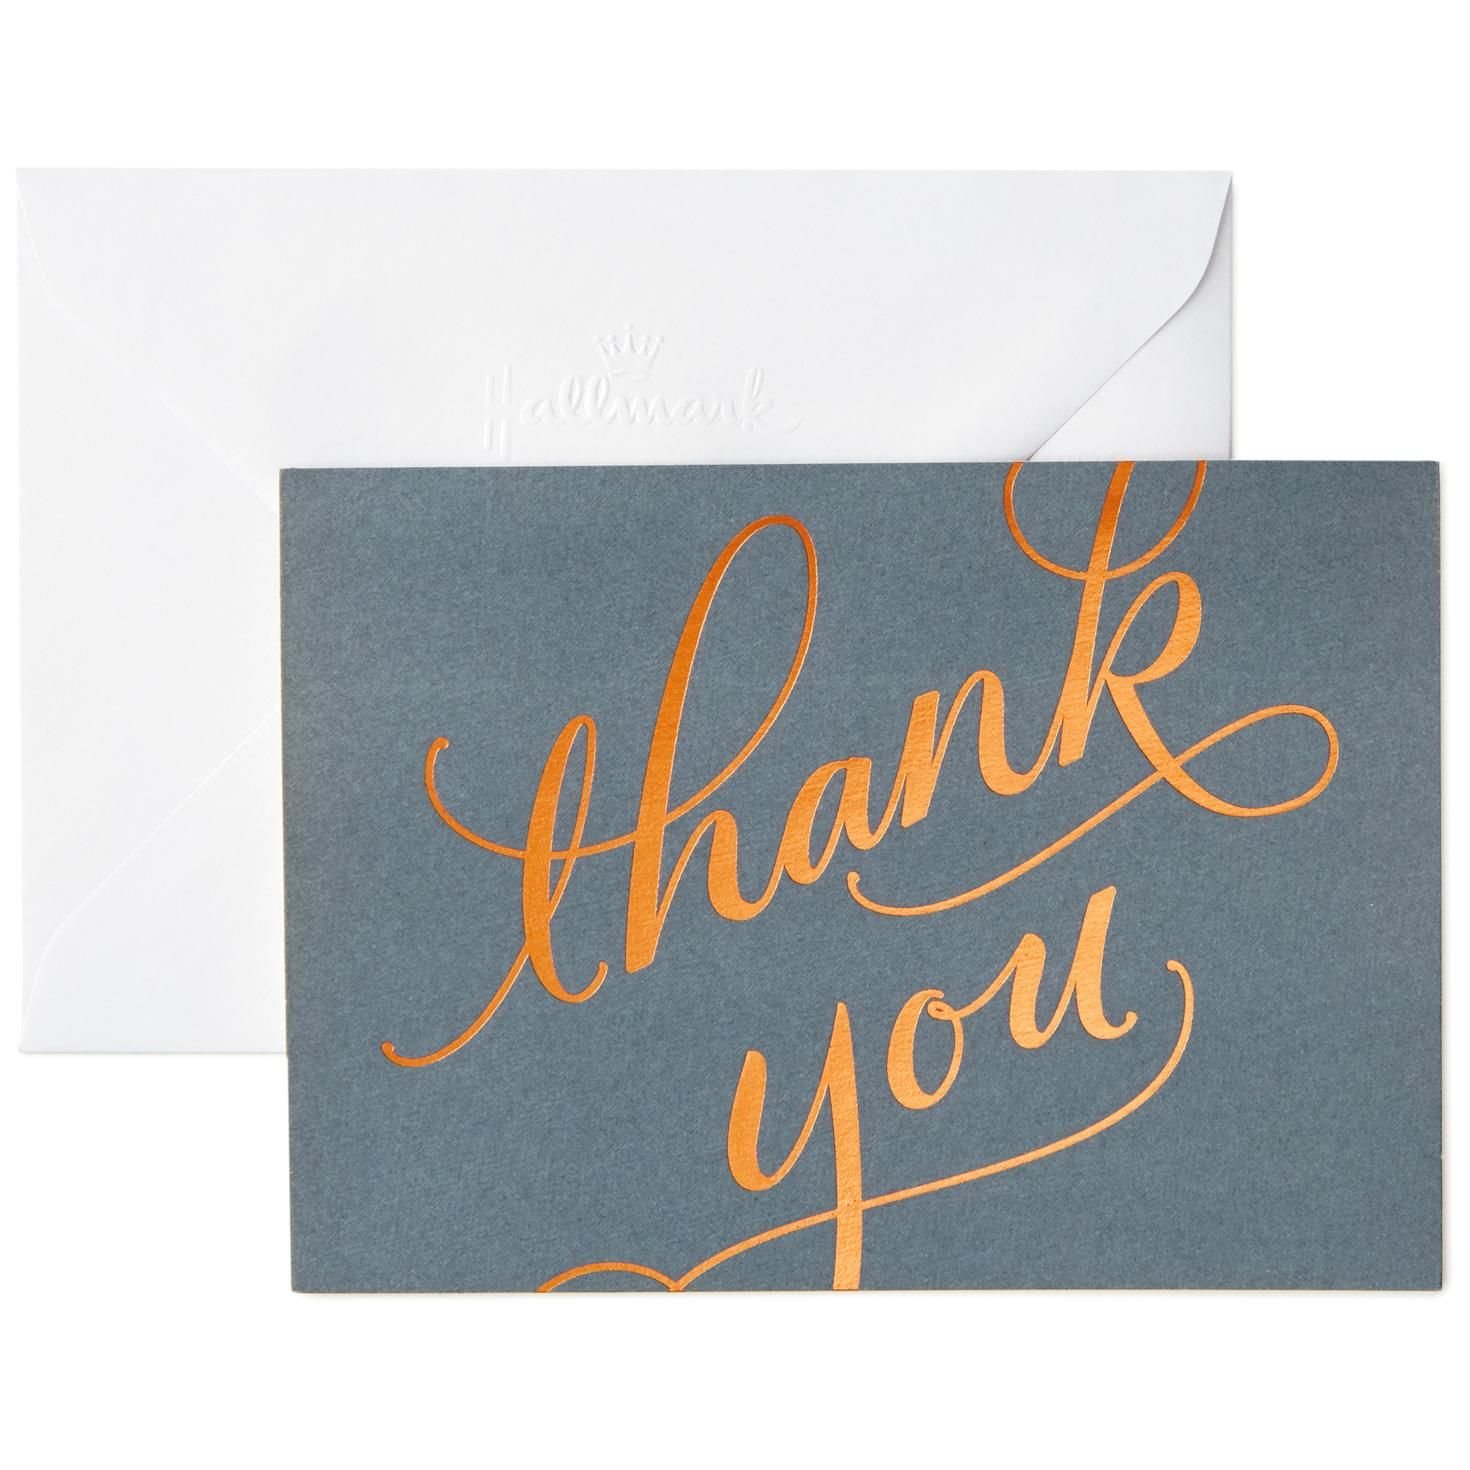 Thank You Notes, Cards Gifts Hallmark